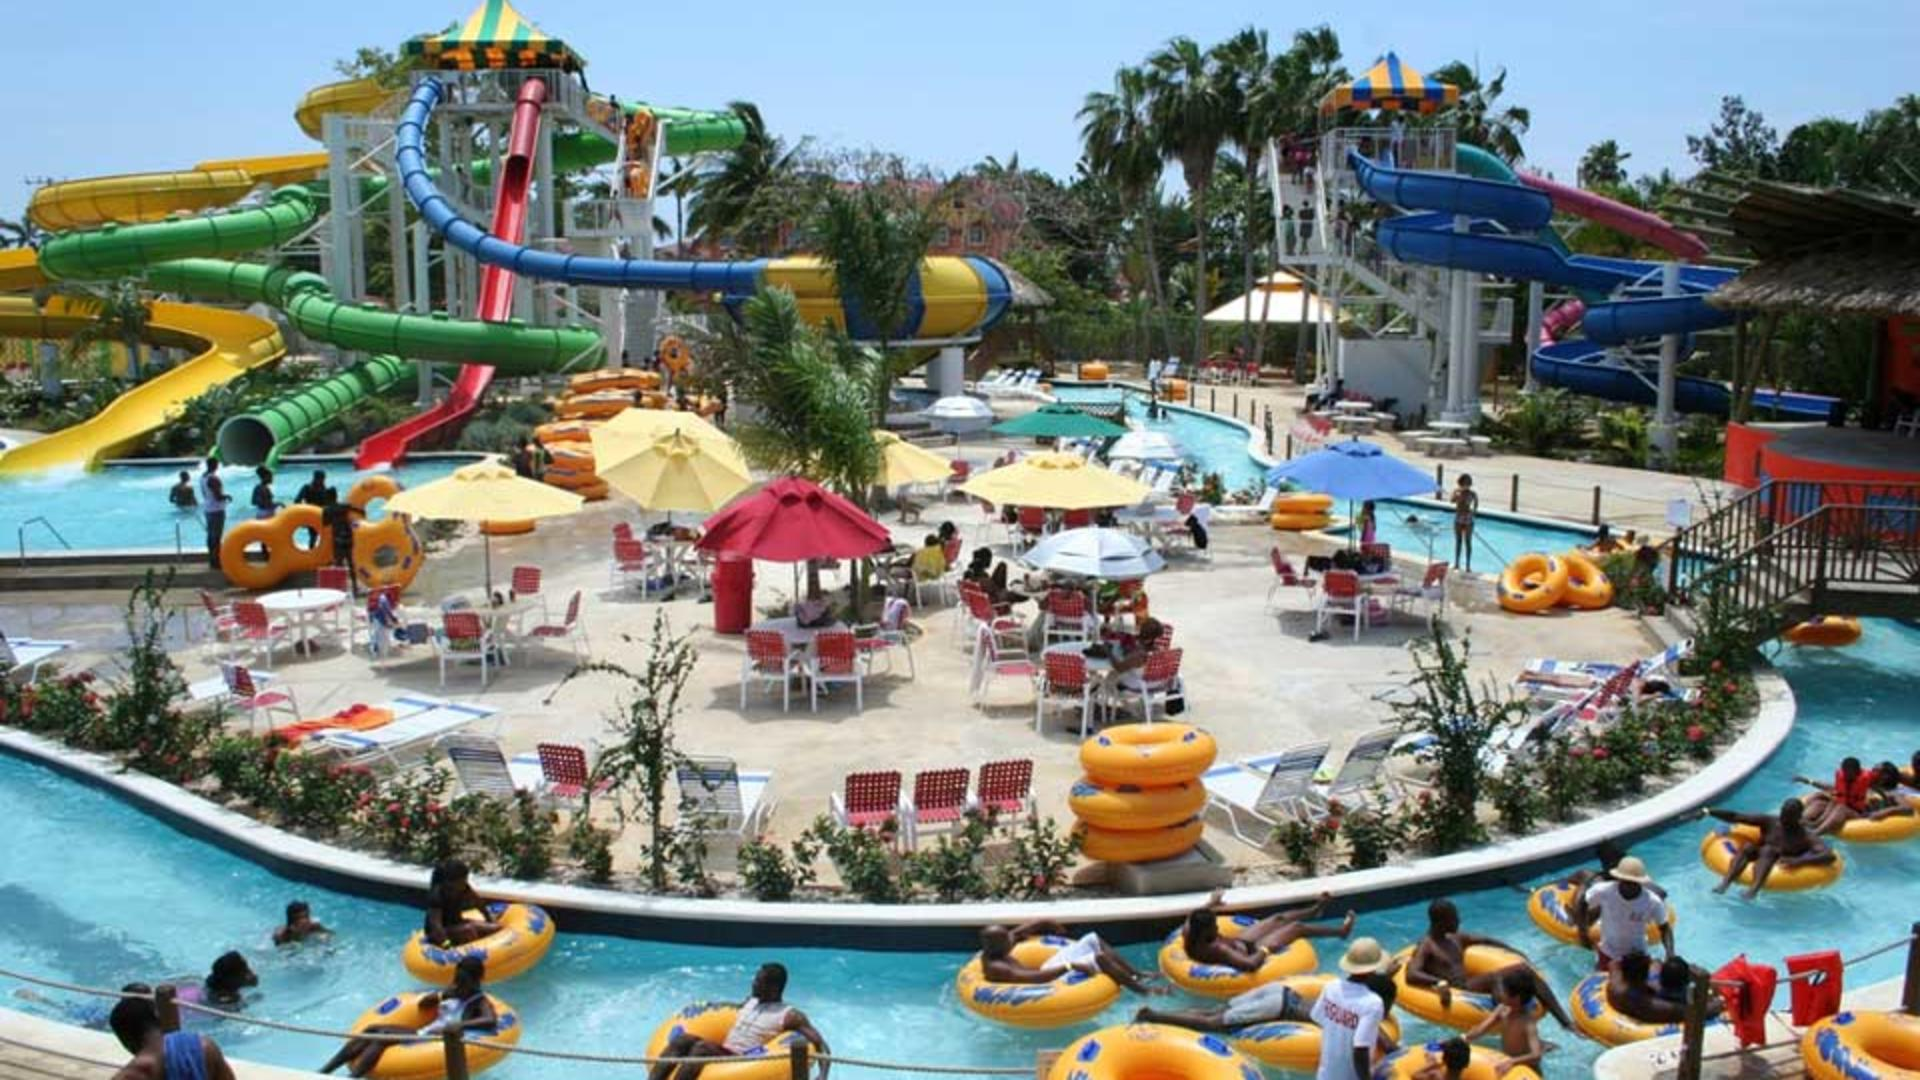 Kool-Runnings-Adventure-Park-'Water-Park'